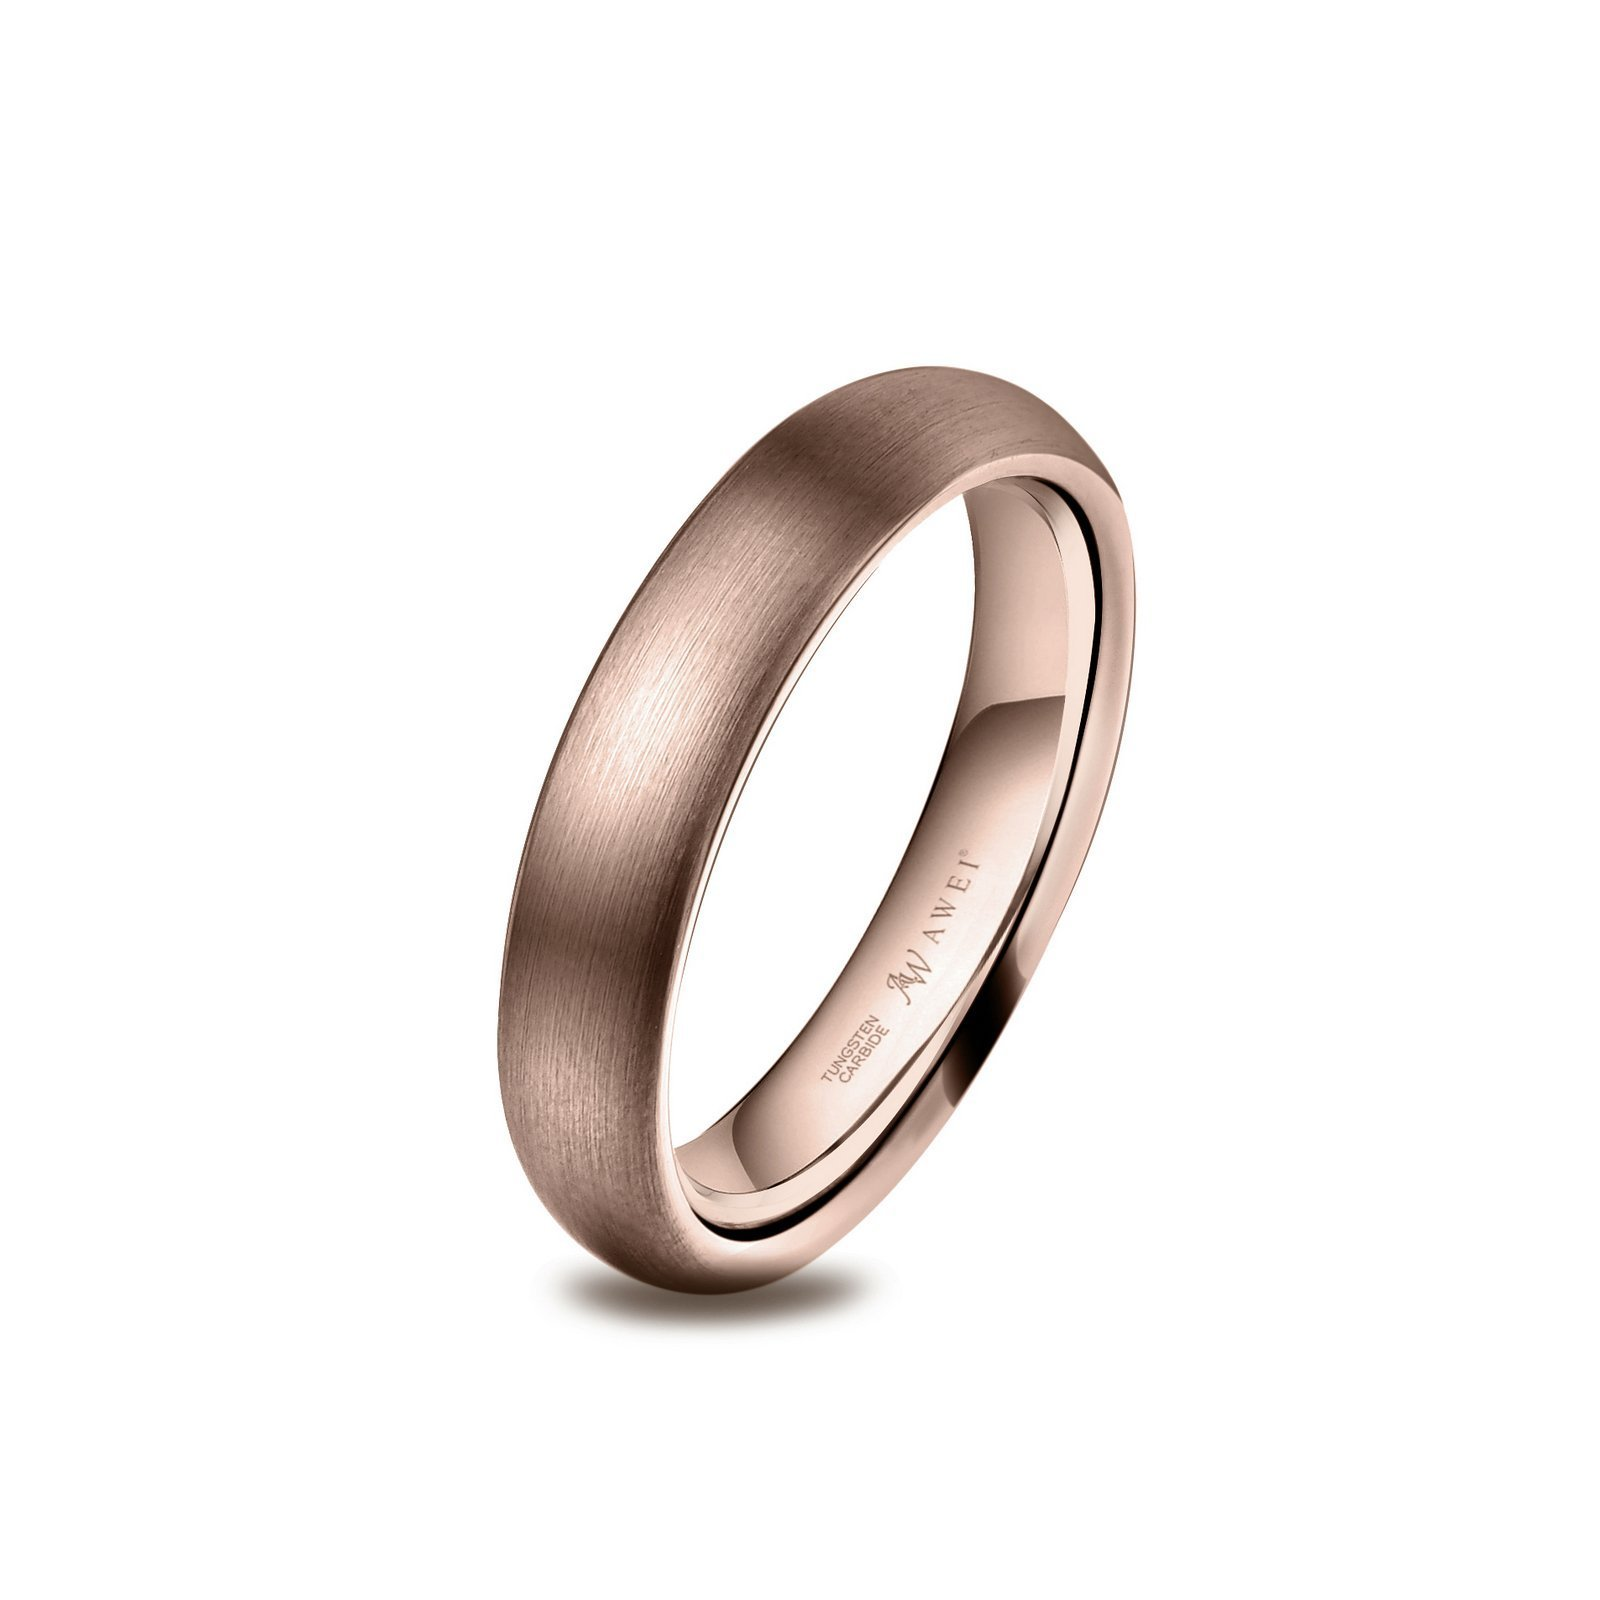 AW Tungsten Rings Matte Brushed Wedding Band - Rose Gold Unisex Comfort Fit Engagement Ring 4mm, Size 7.5